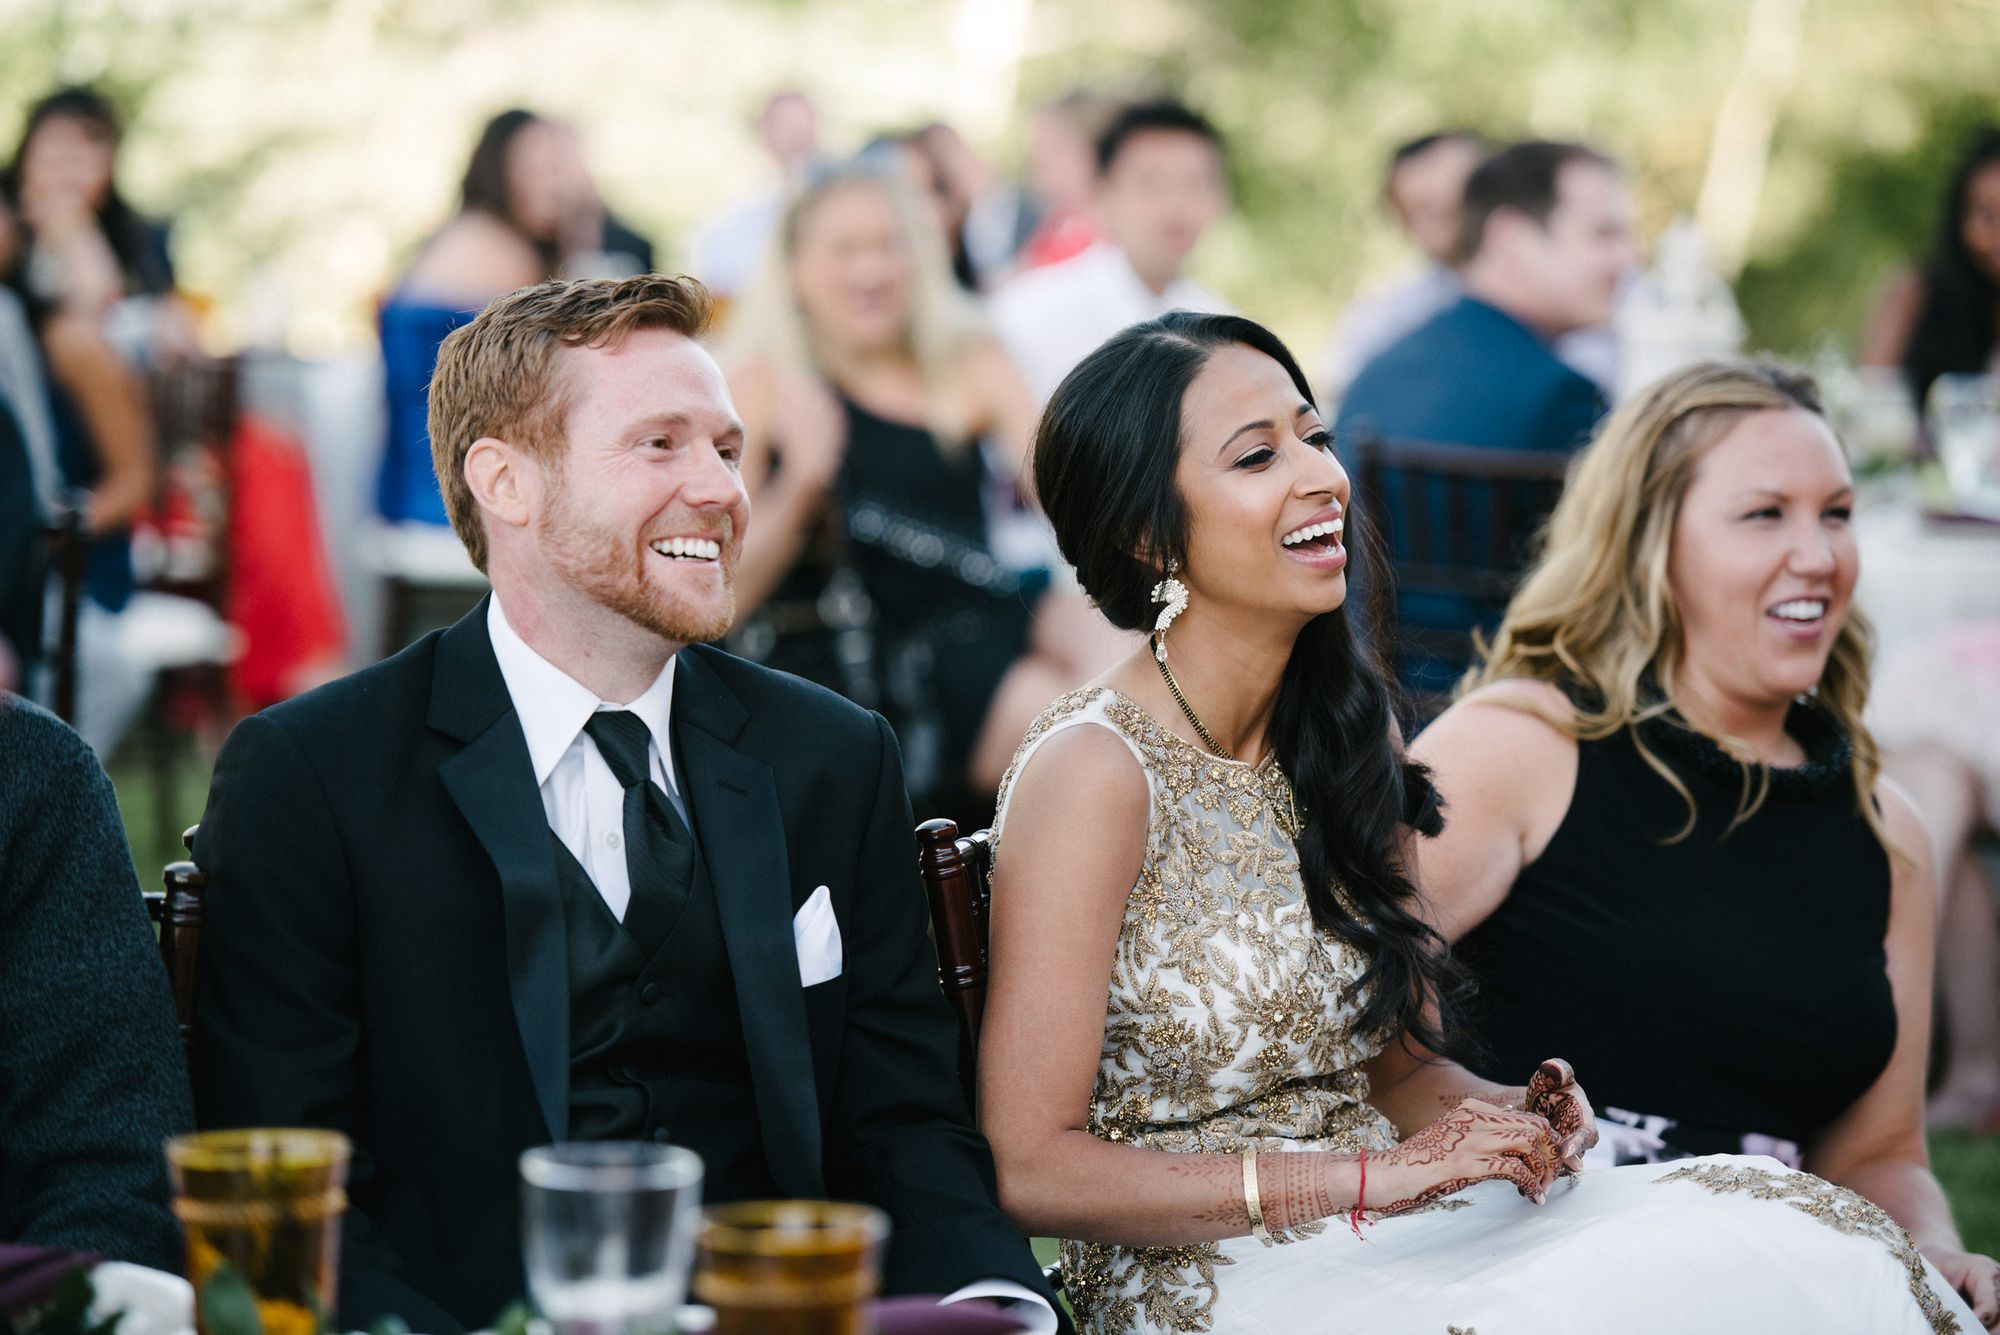 Reema_Spencer_Temple_Har_Shalom_Park_City_Utah_Couple_Laughing_Dinner.jpg